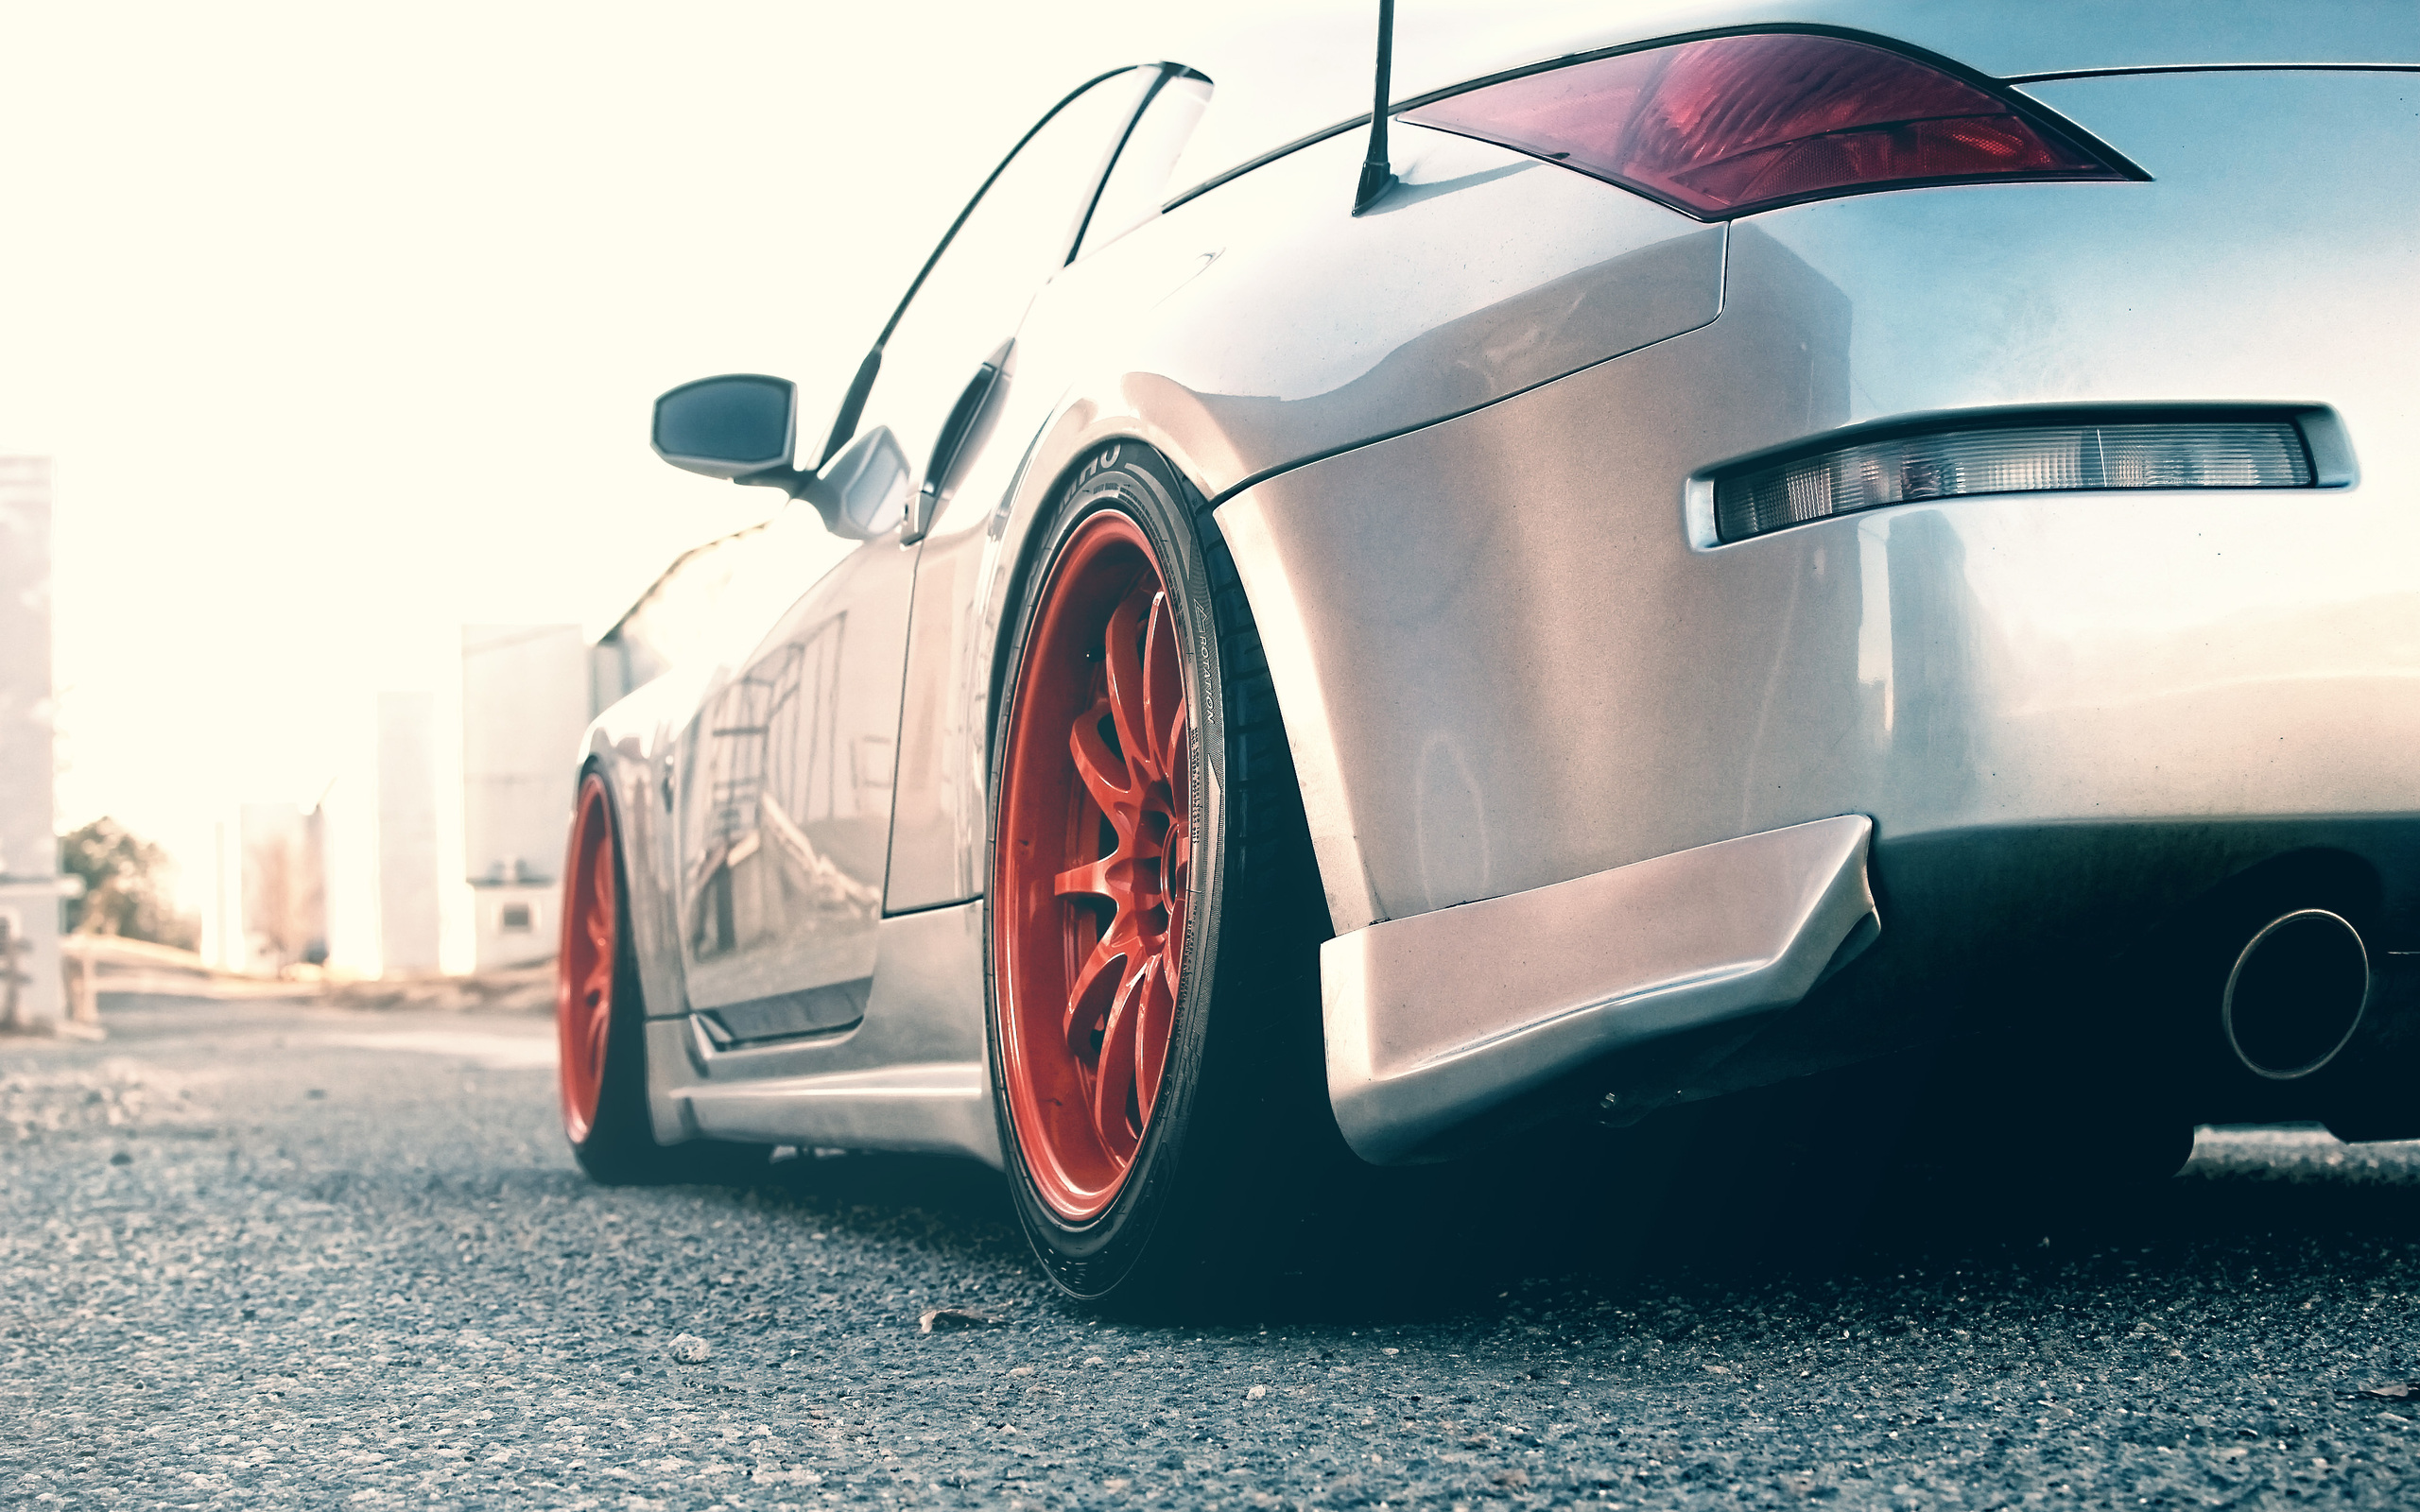 54 Nissan 350Z HD Wallpapers | Backgrounds - Wallpaper Abyss